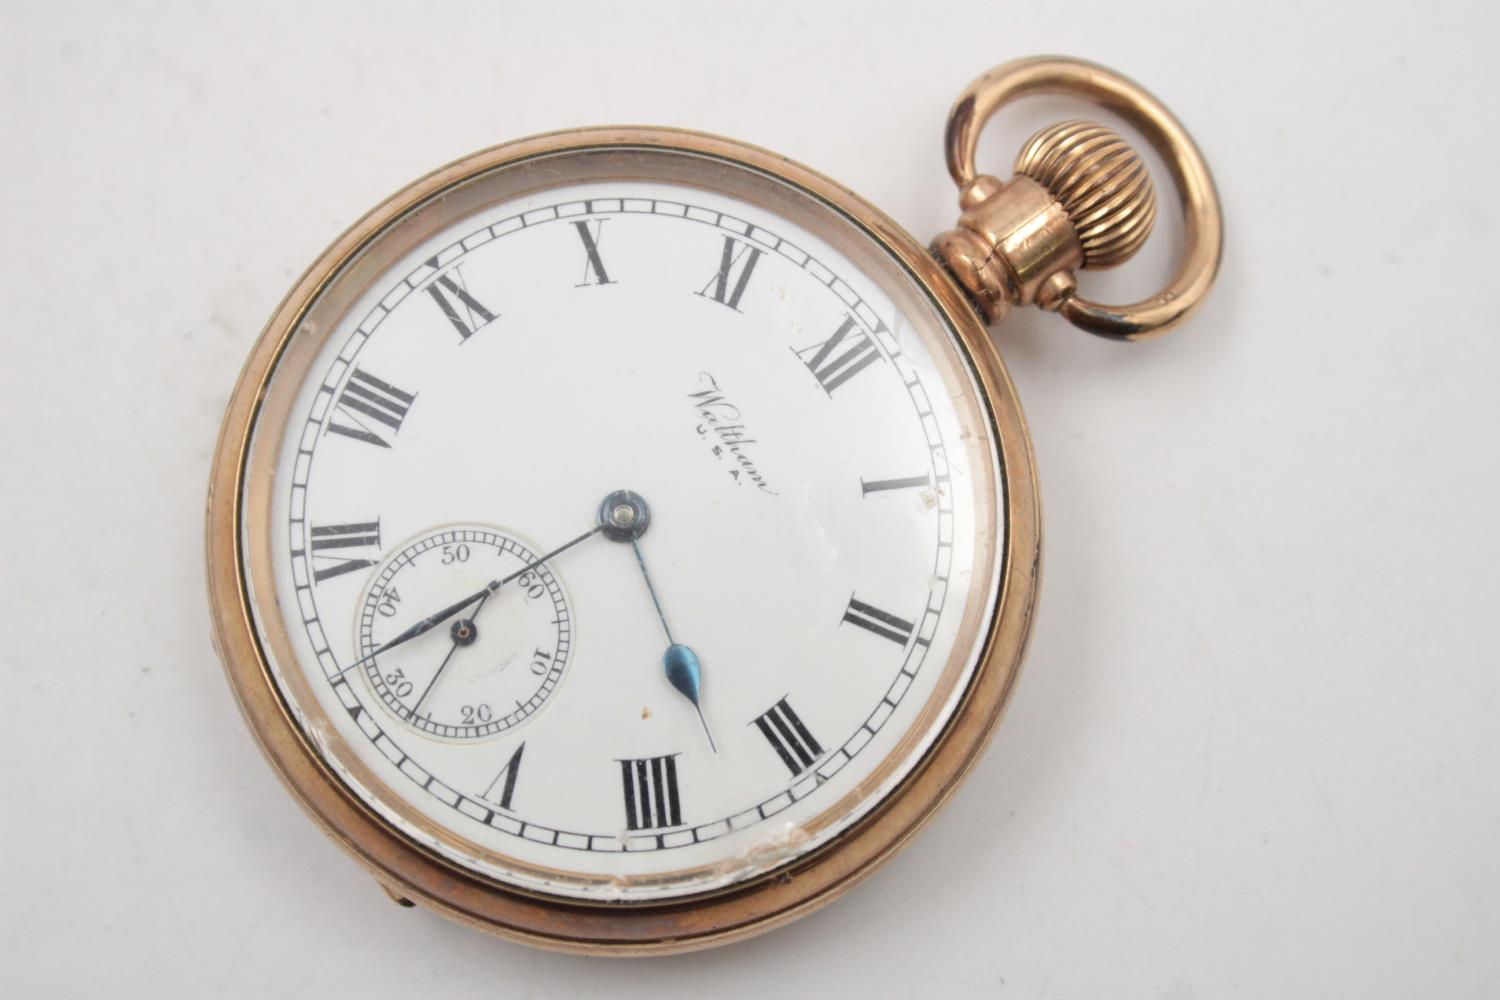 Vintage Gents WALTHAM Rolled Gold Open Face POCKET WATCH Hand-Wind (102g) - Image 2 of 6